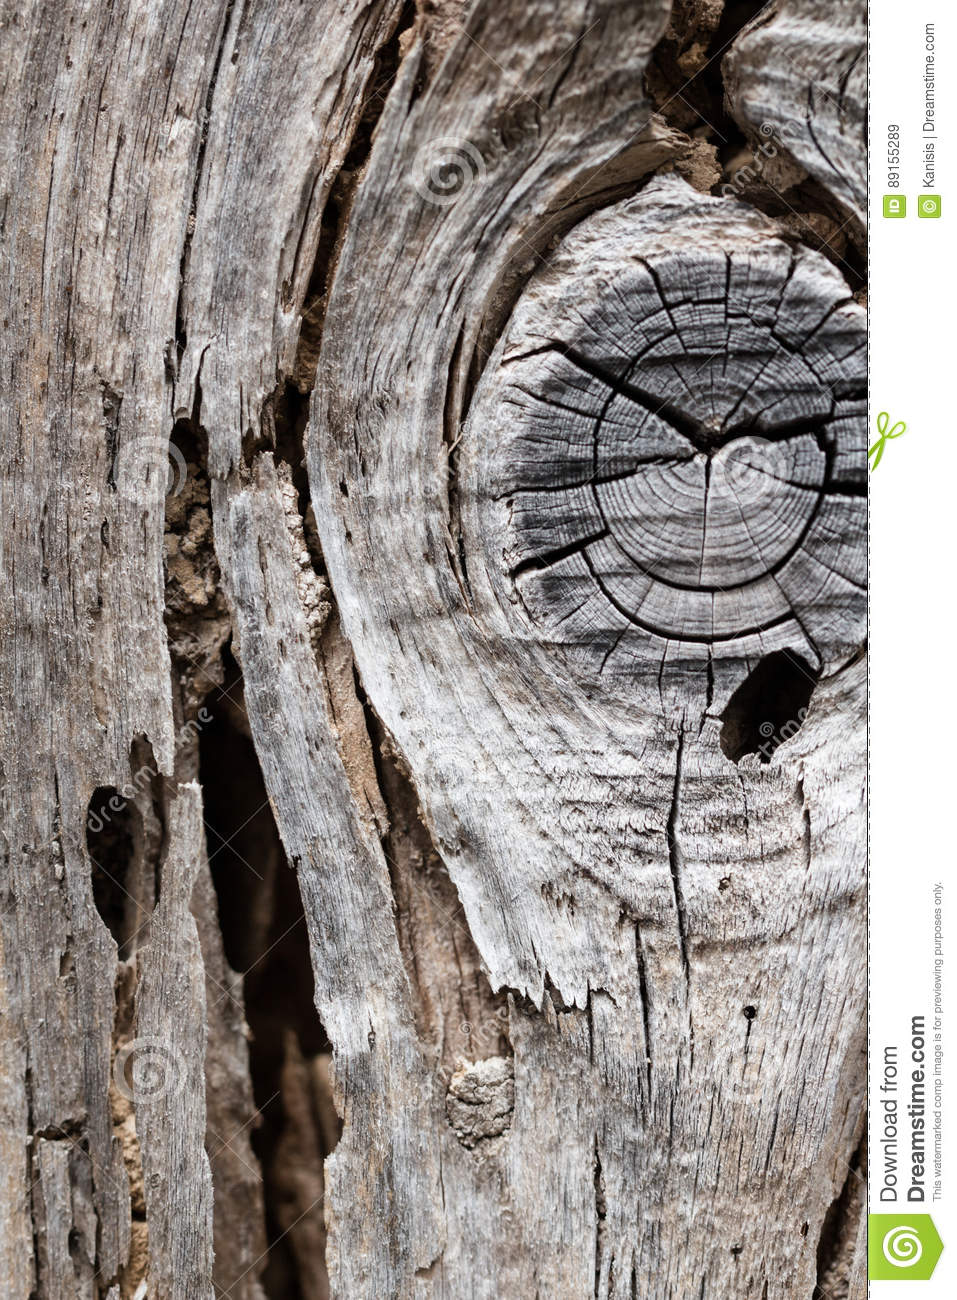 Old rustic dry decay wood board full of wormholes made by woodwo